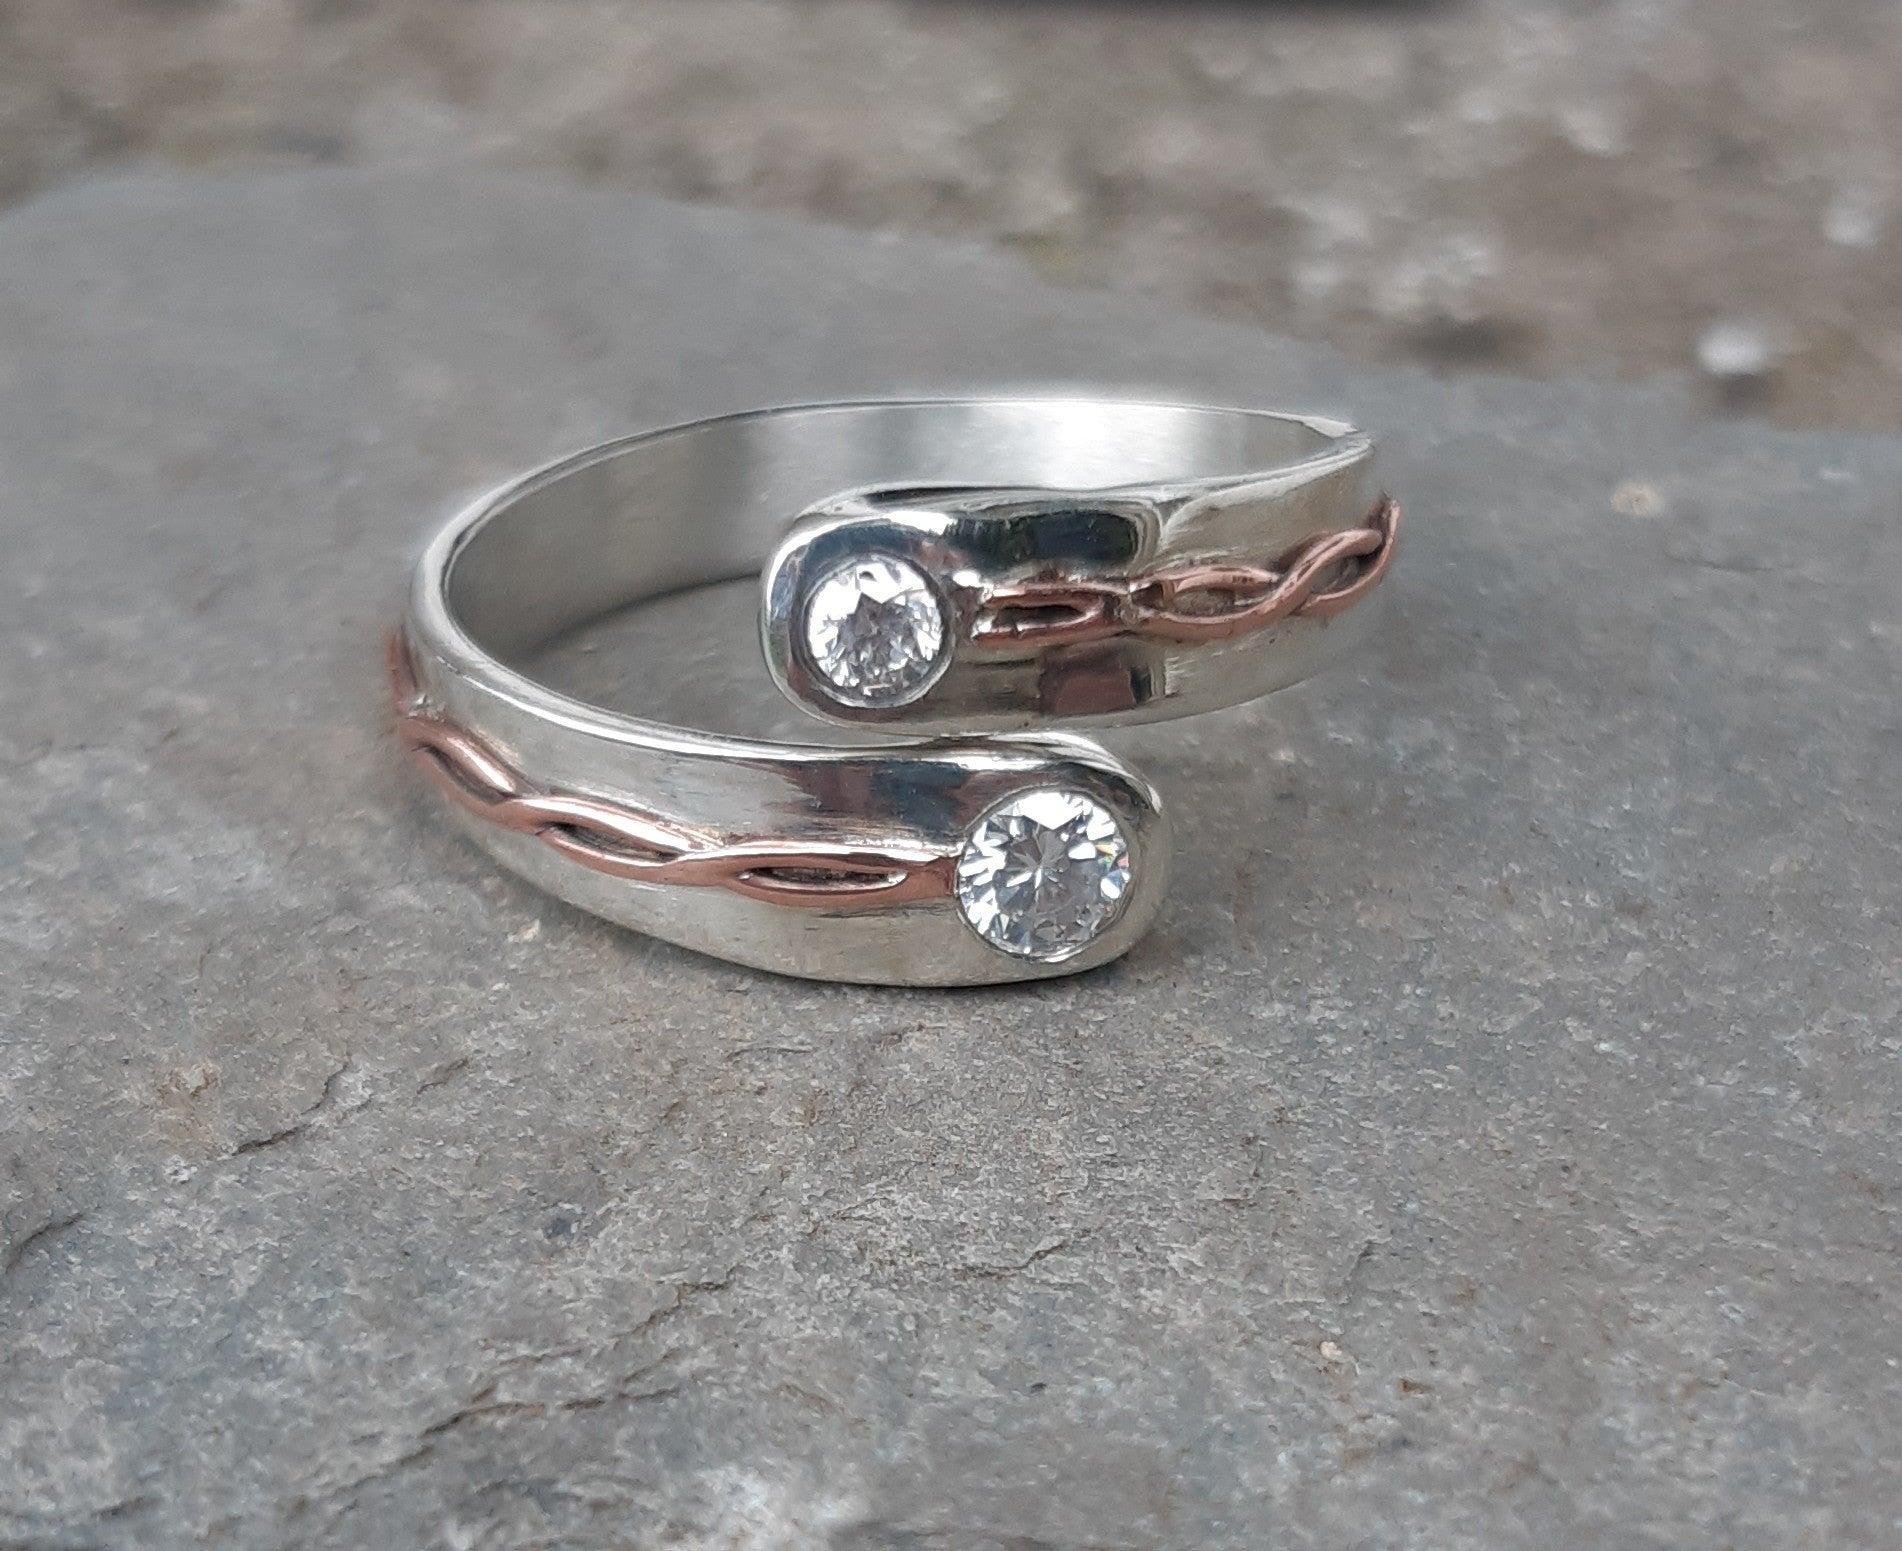 Bespoke thumb ring in 9ct white gold with diamonds